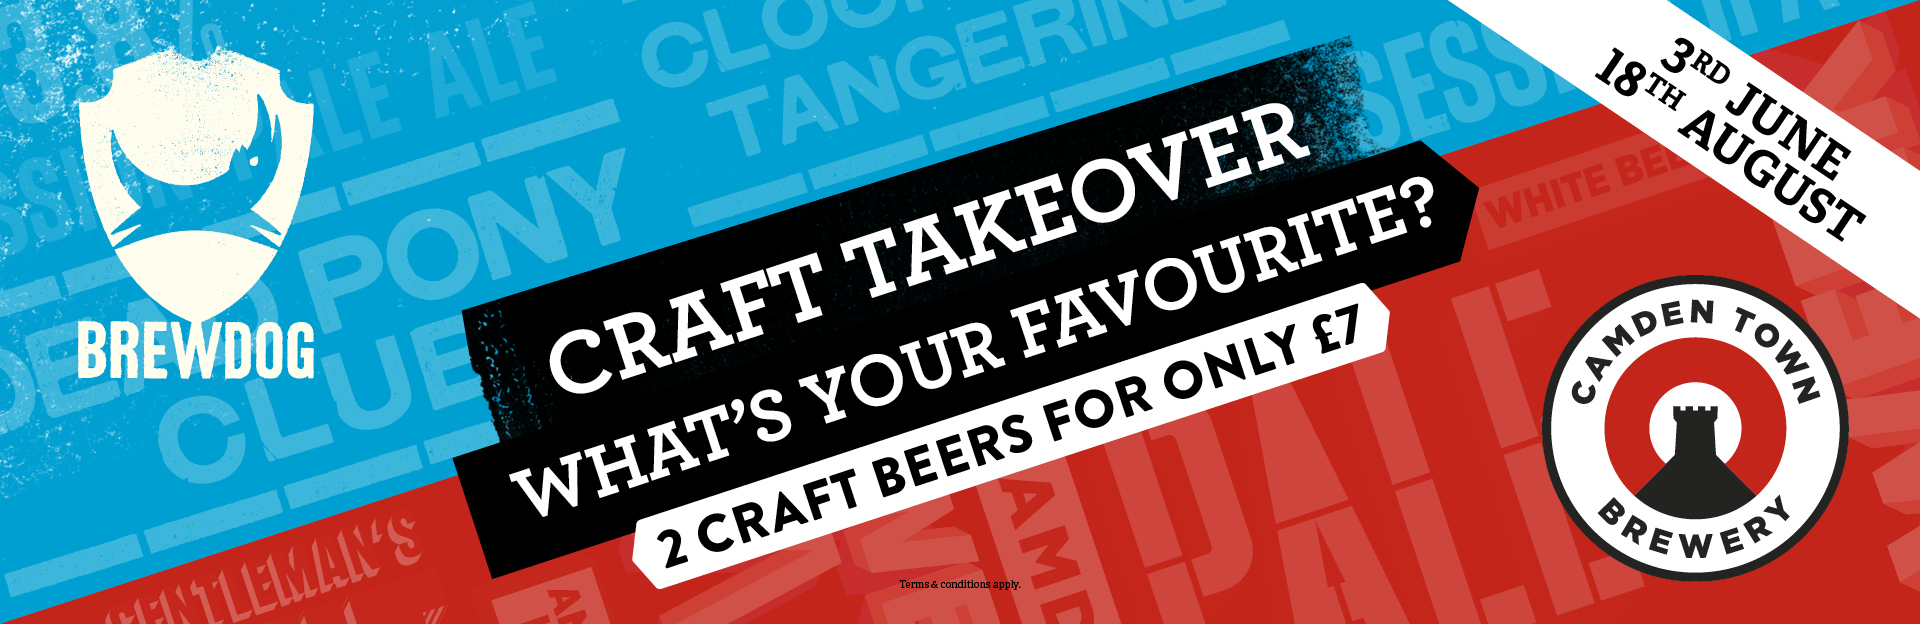 Craft Takeover at The Old Market Tavern